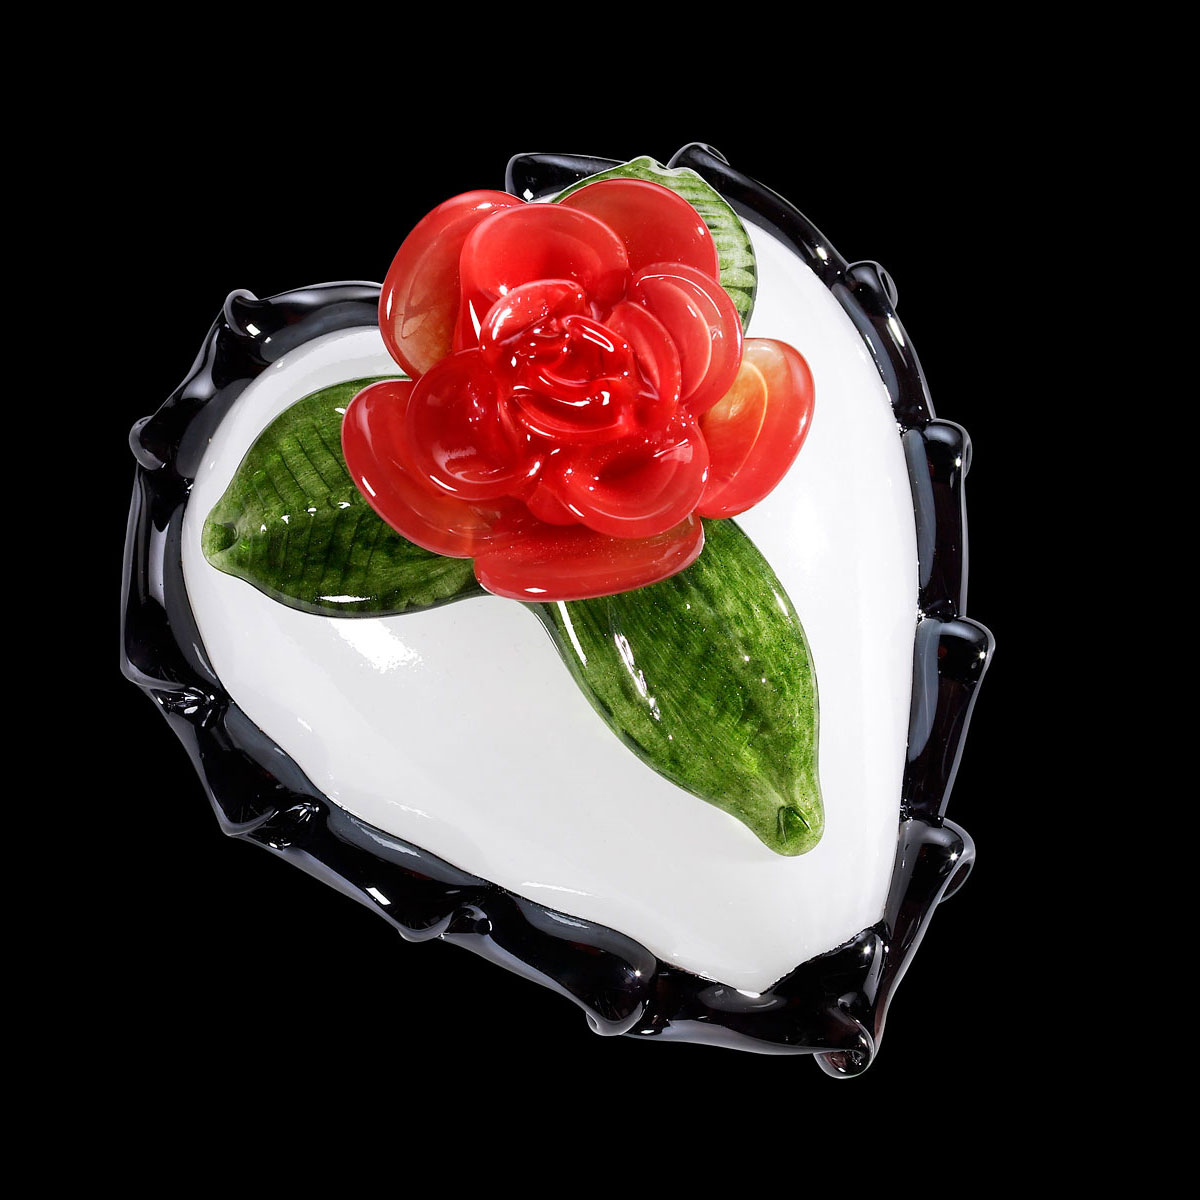 Kosta Boda Art Glass Ludvig Lofgren Old School, White and Red Heart